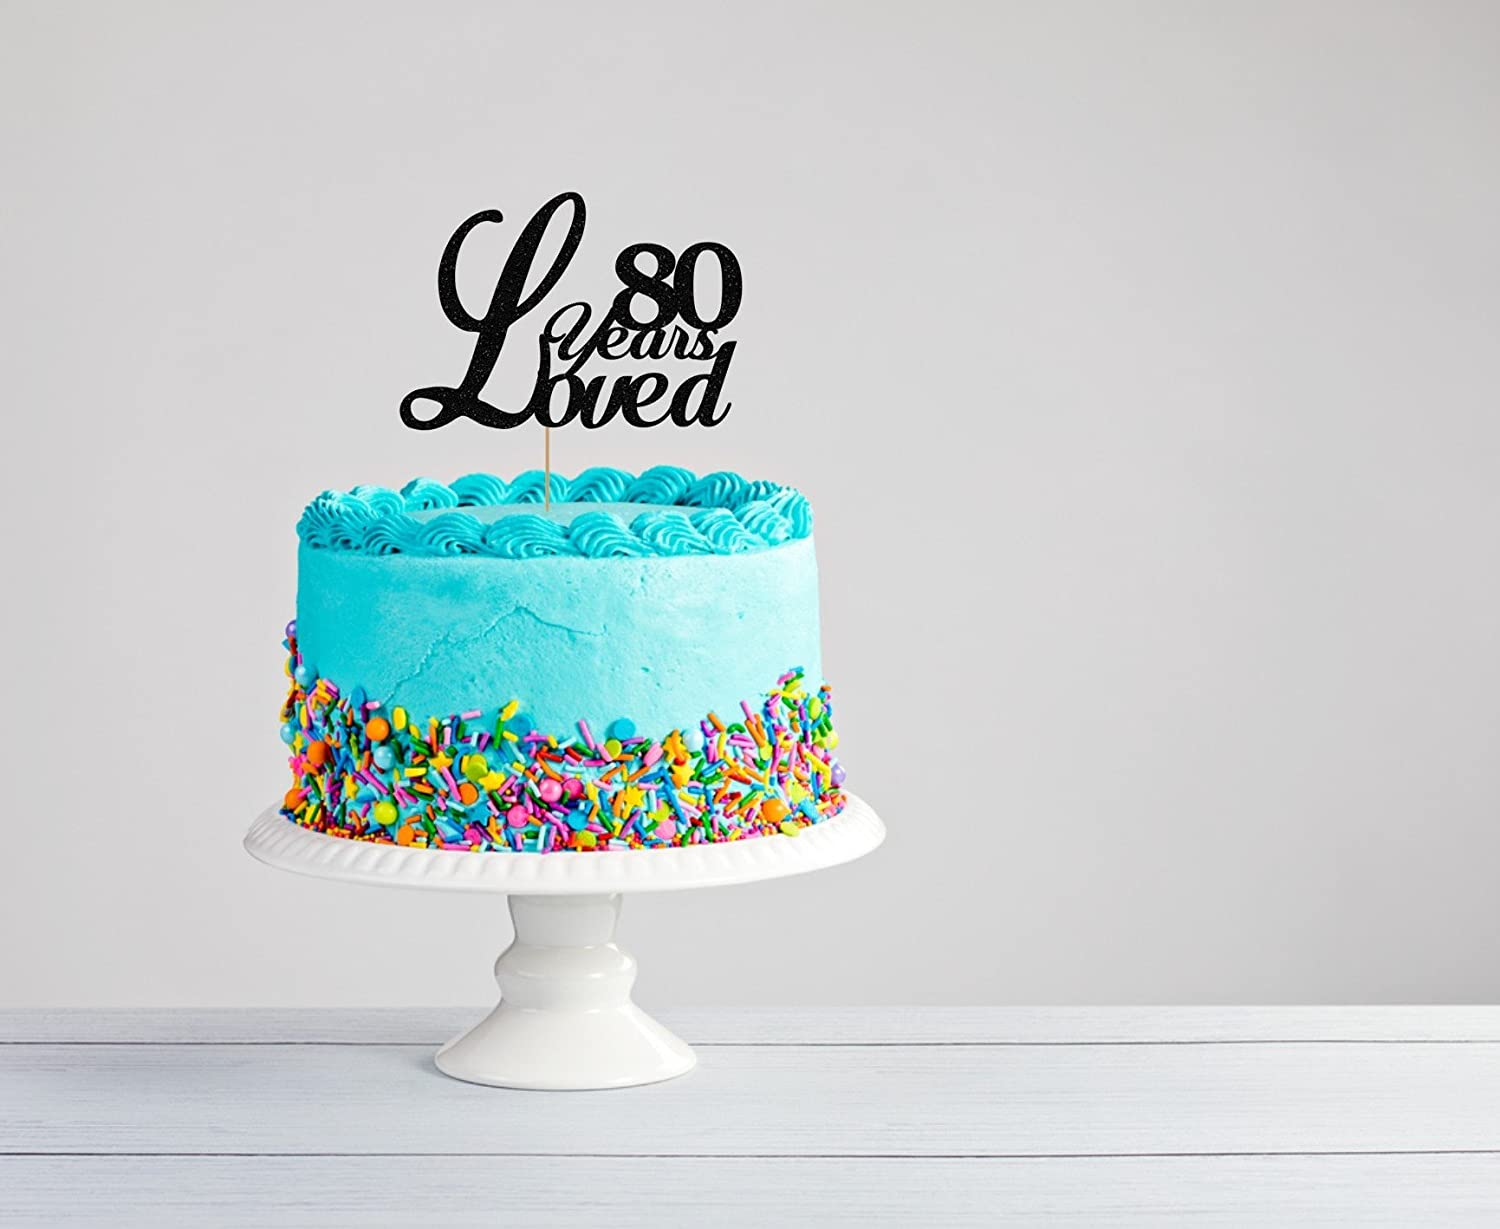 Amazon Eightieth Birthday Cake Topper 80th EightiethTopper Party Eighty Years Loved Surprise